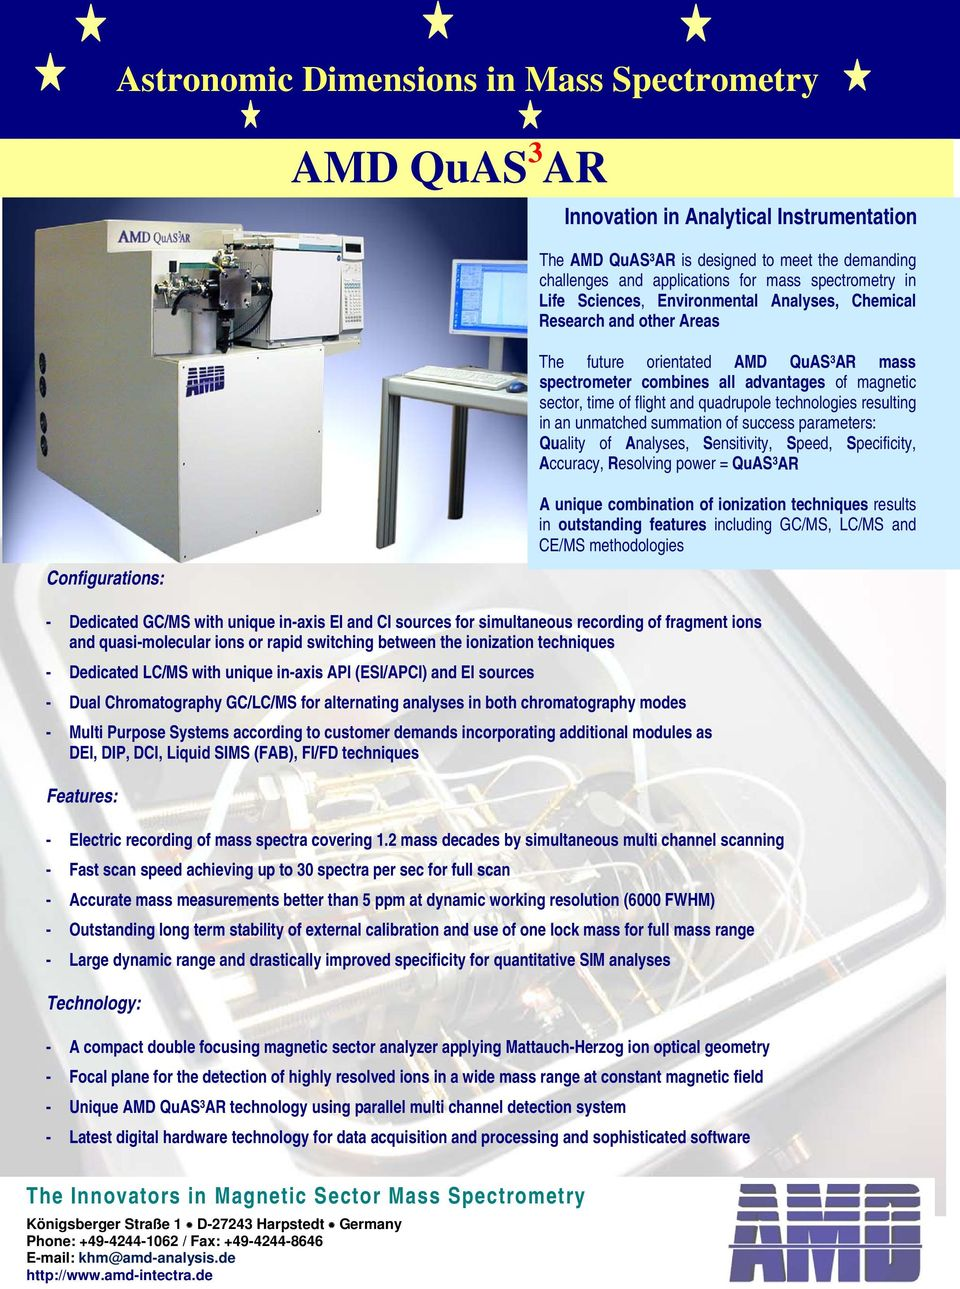 quadrupole technologies resulting in an unmatched summation of success parameters: Quality of Analyses, Sensitivity, Speed, Specificity, Accuracy, Resolving power = QuAS 3 AR Configurations: A unique